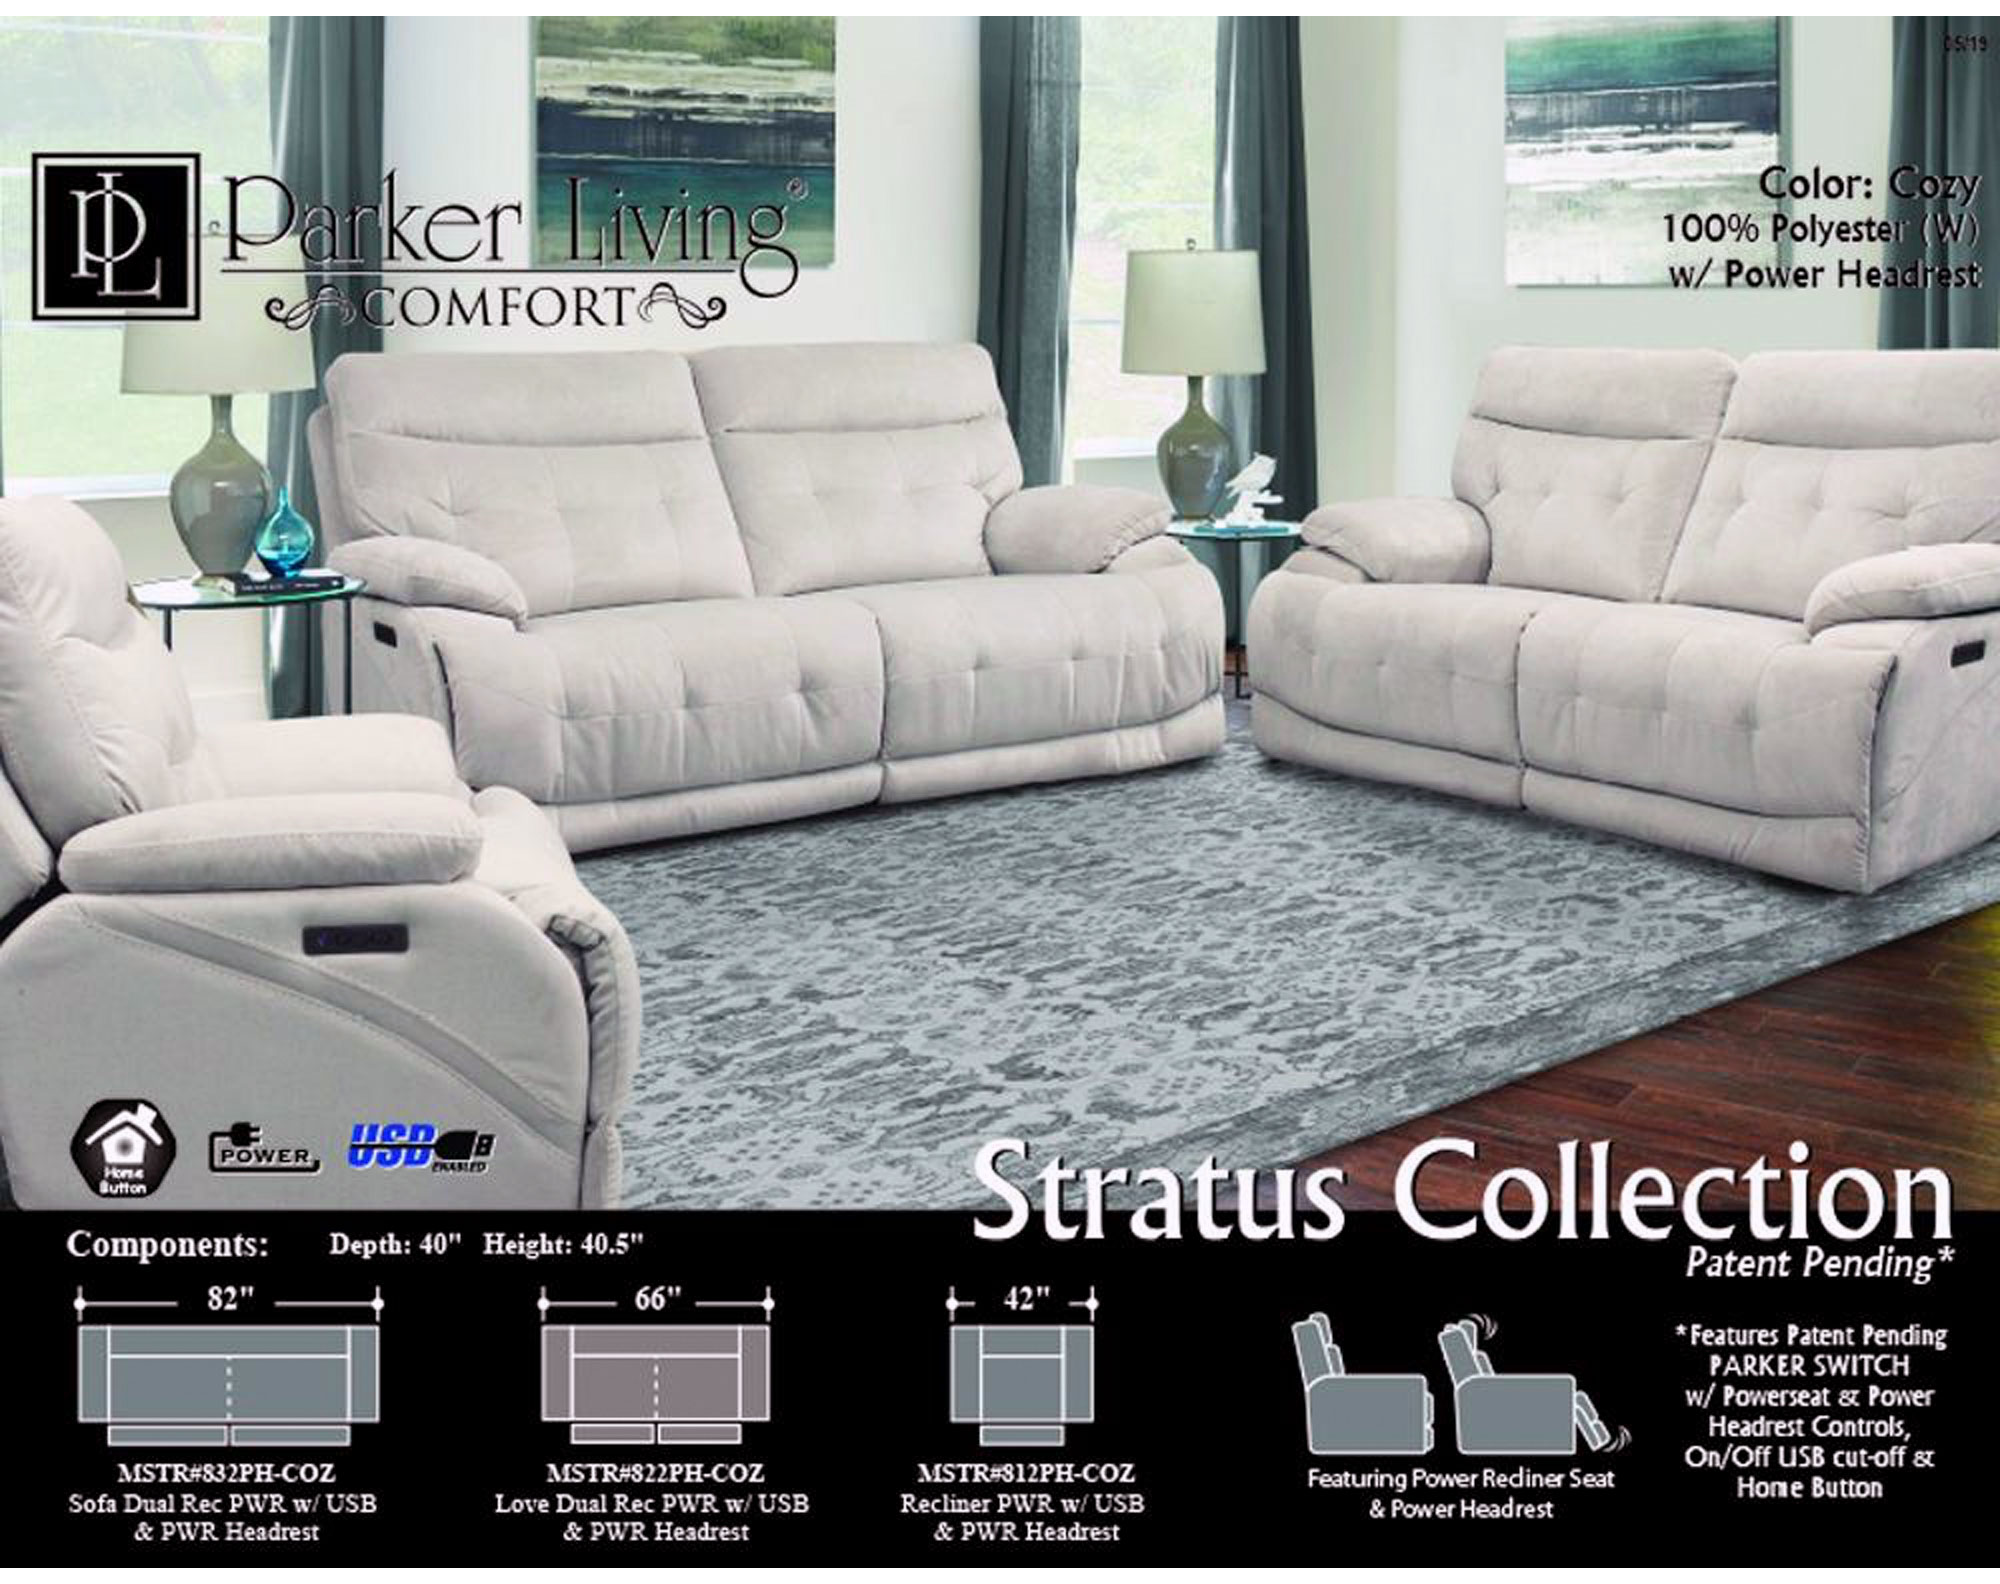 Magnificent Stratus Cozy Power Sofa With Power Headrest Sofas And Ibusinesslaw Wood Chair Design Ideas Ibusinesslaworg